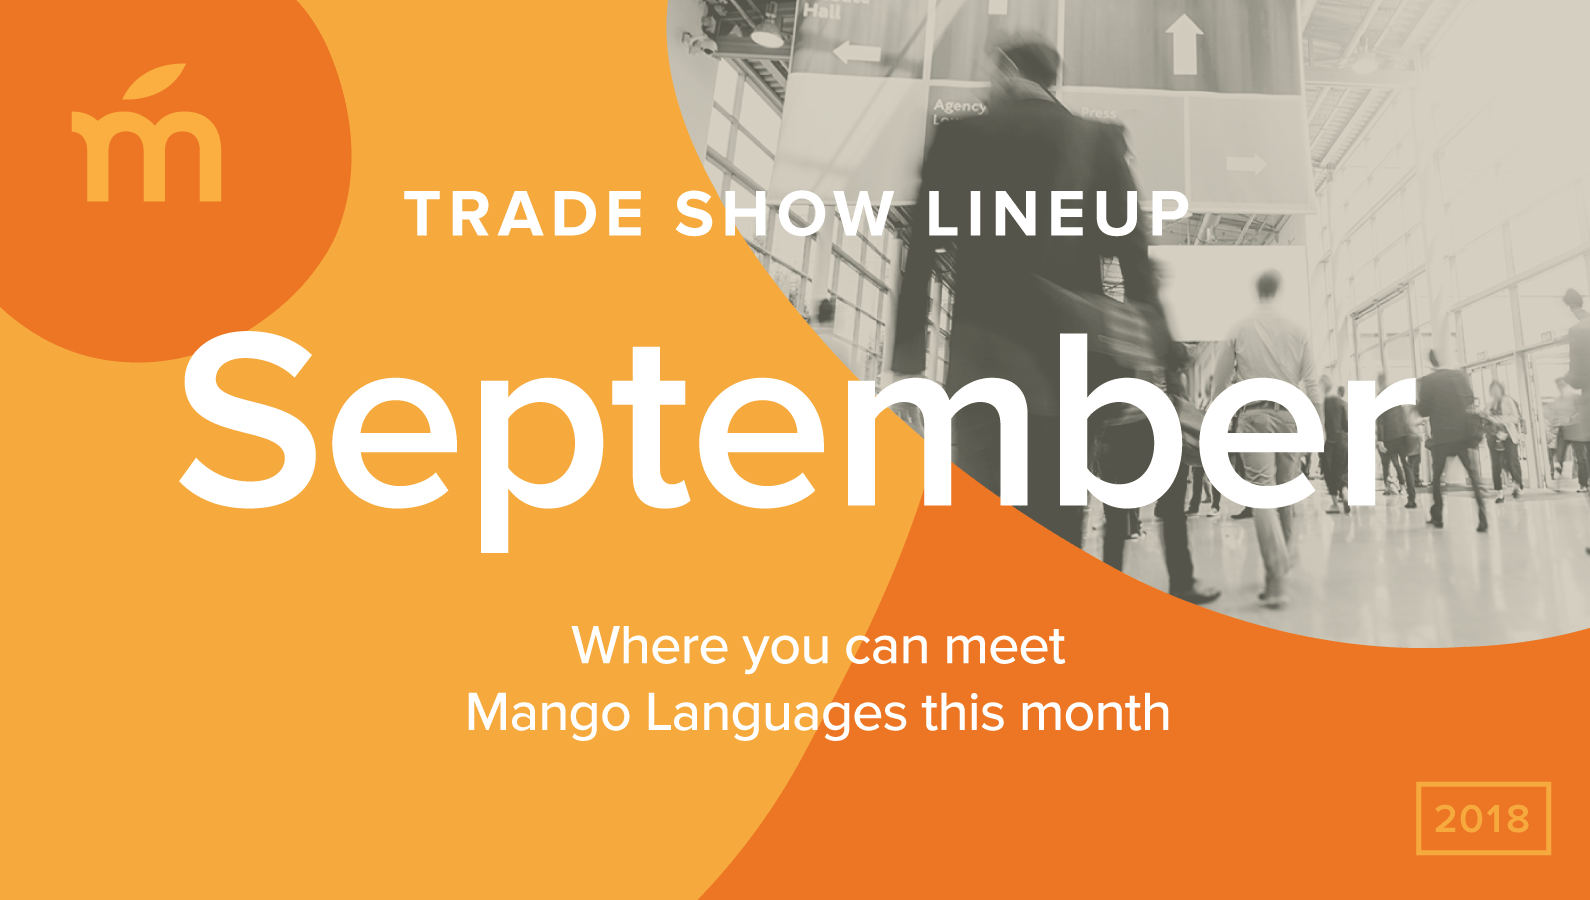 September trade show lineup with Mango Languages